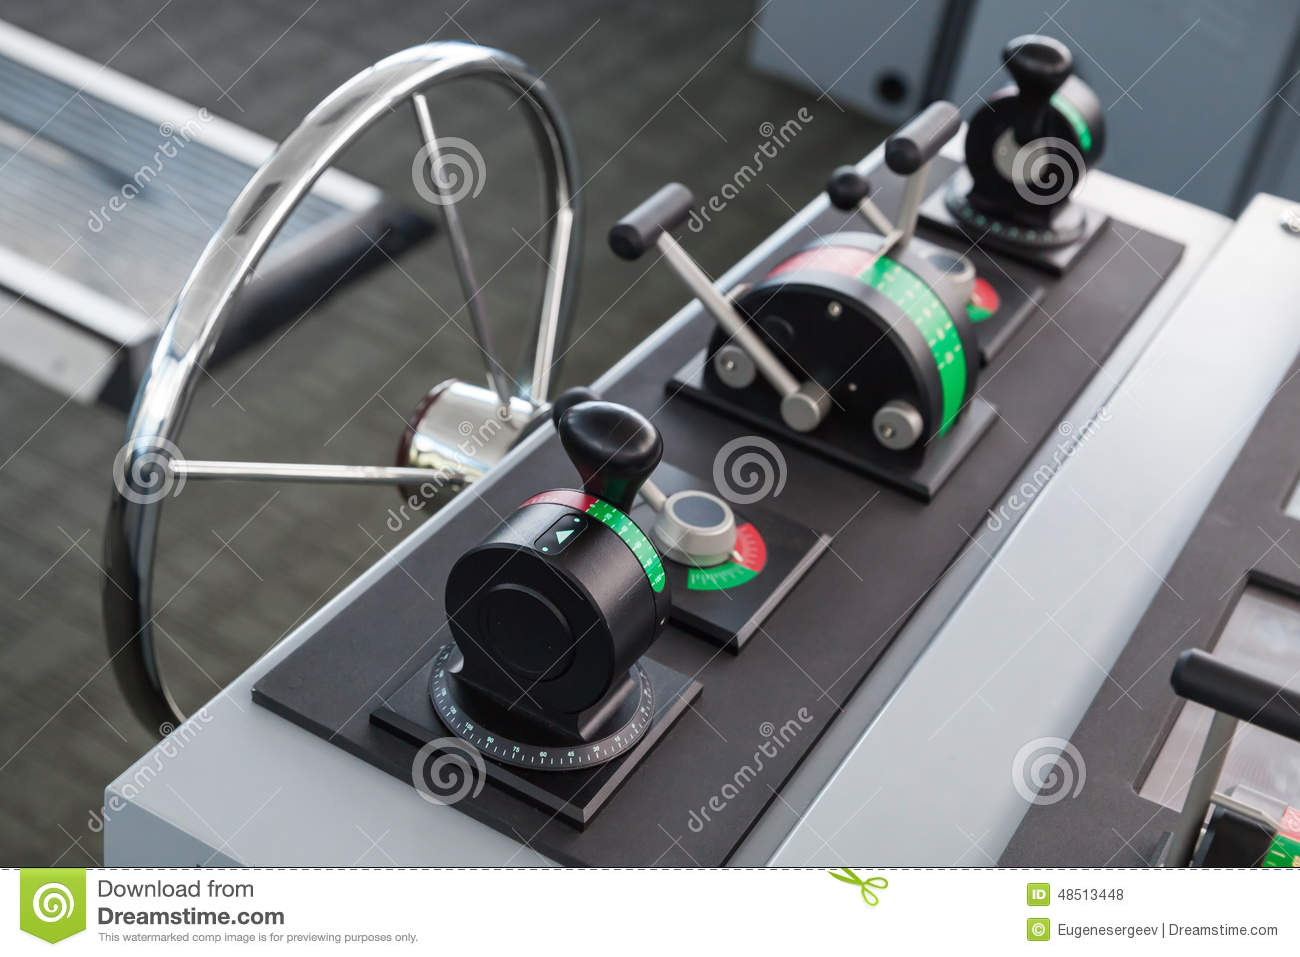 Throttle Handle For Boat